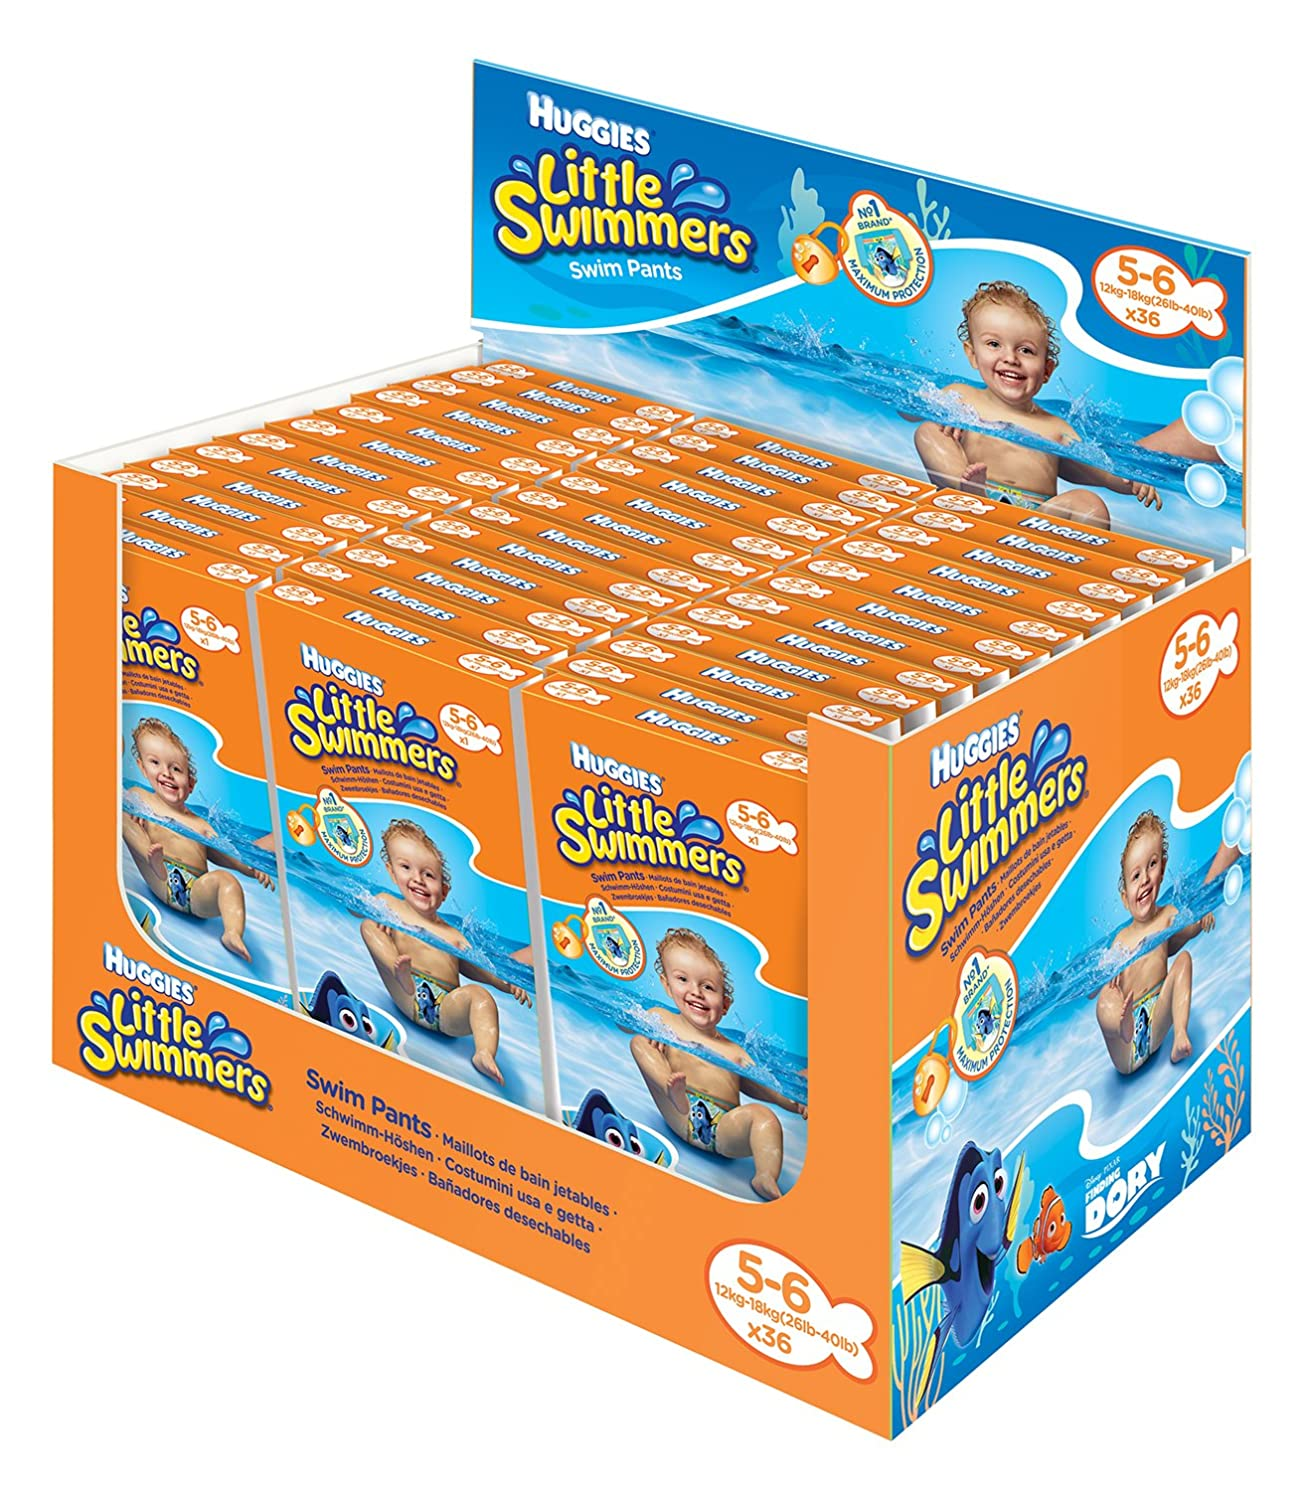 Huggies Little Swimmers Disposable Swim Nappies – Size 5 – 6 Individually Packaged ~ Crafts ~ Scrapbooks ~ Decoration 29174_Dispay